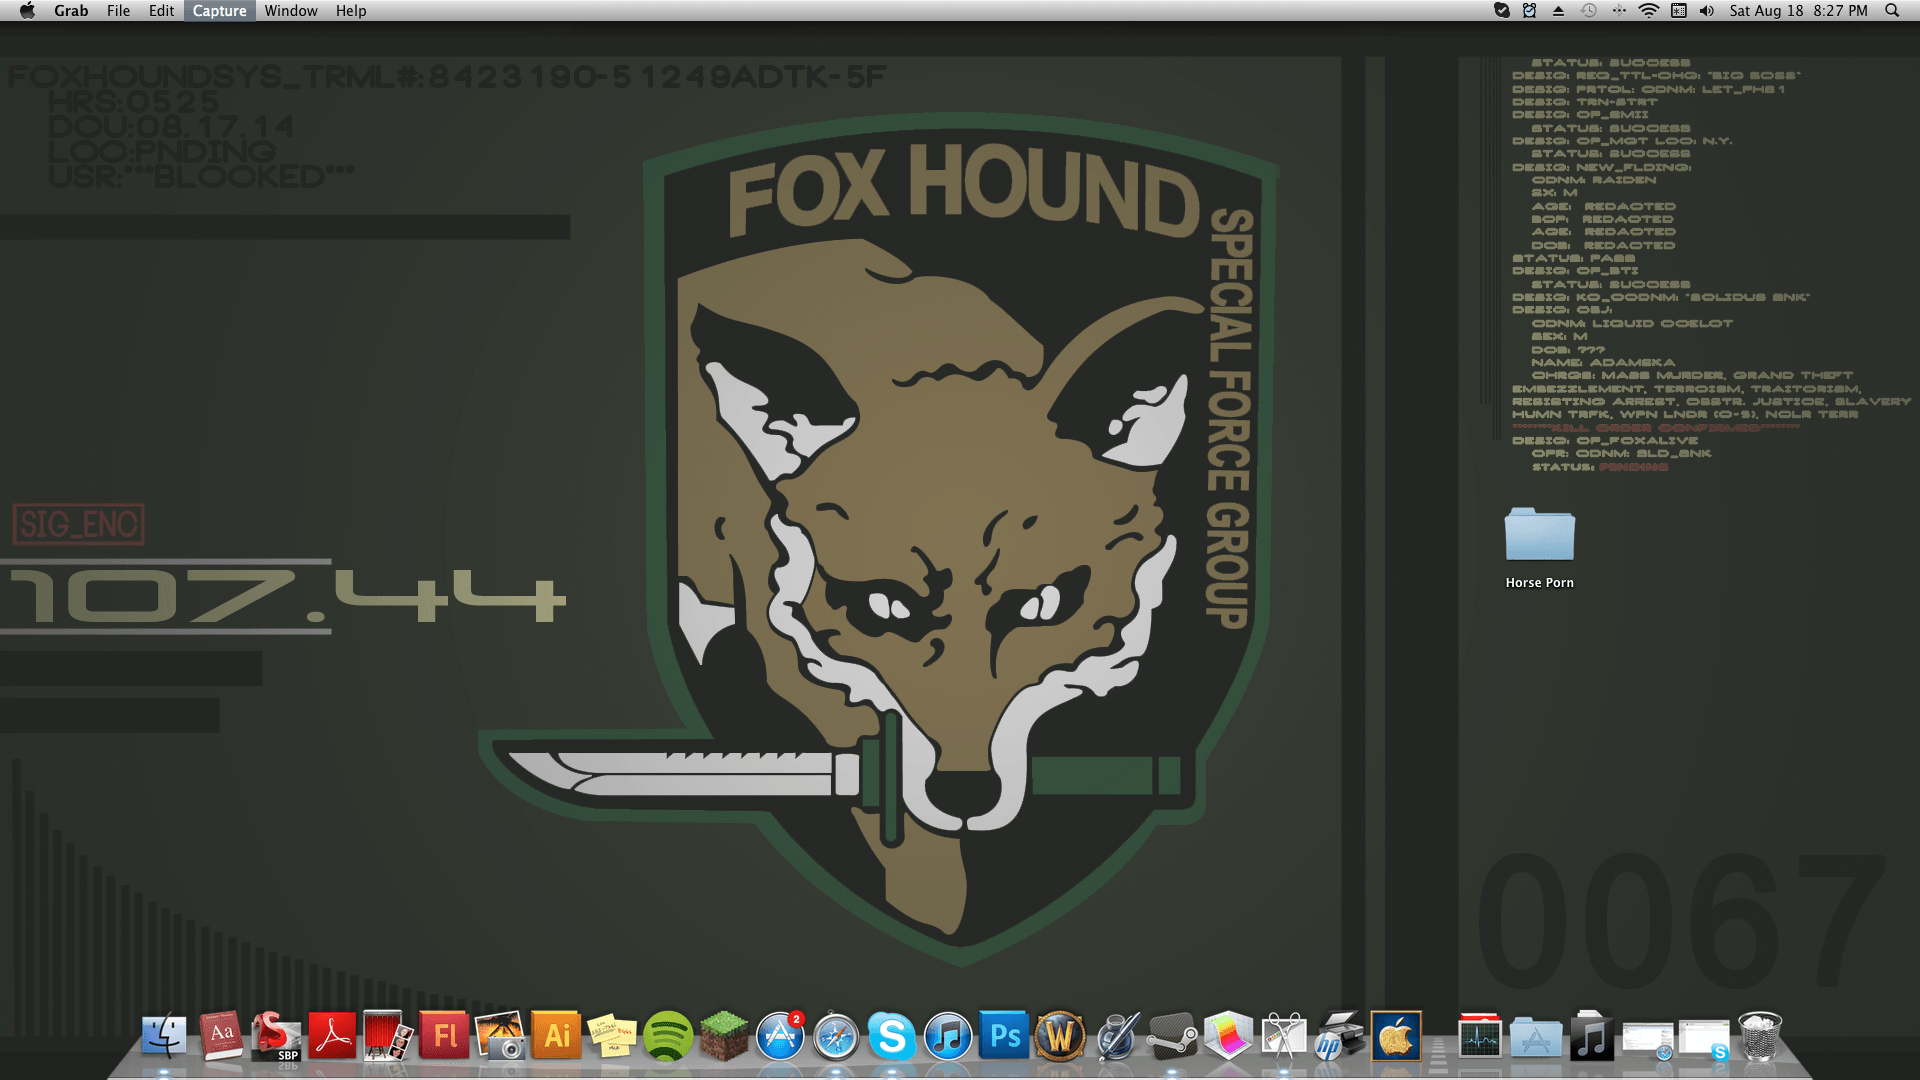 My new FOXHOUND wallpapers I made. I'm pretty happy with it. : gaming